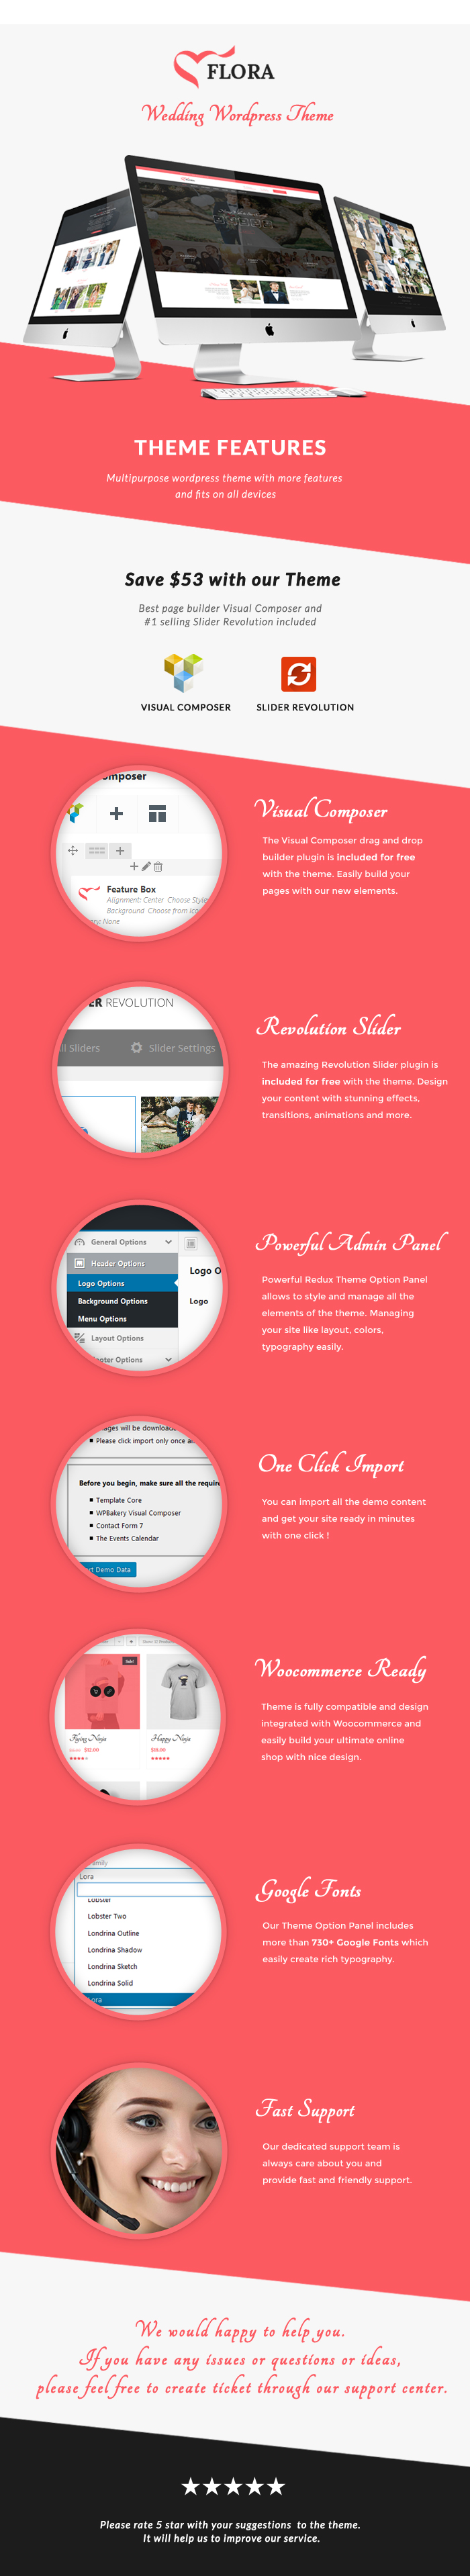 Flora - WordPress Wedding Theme - 1